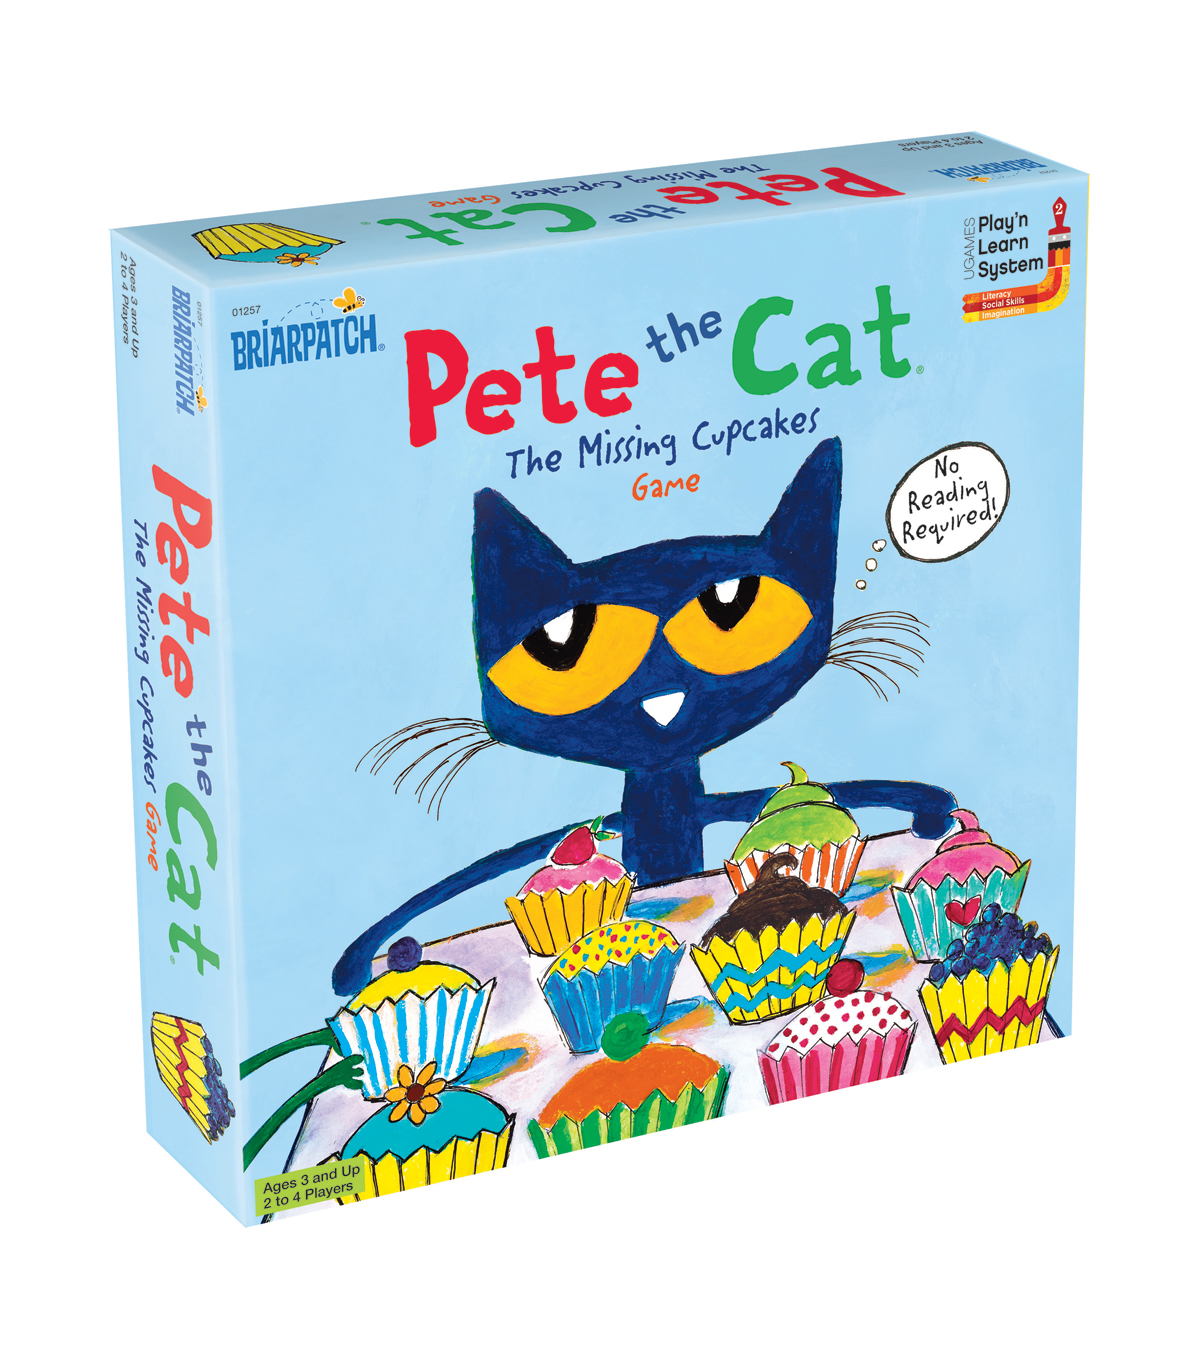 Pete The Cat Cupcakes Game